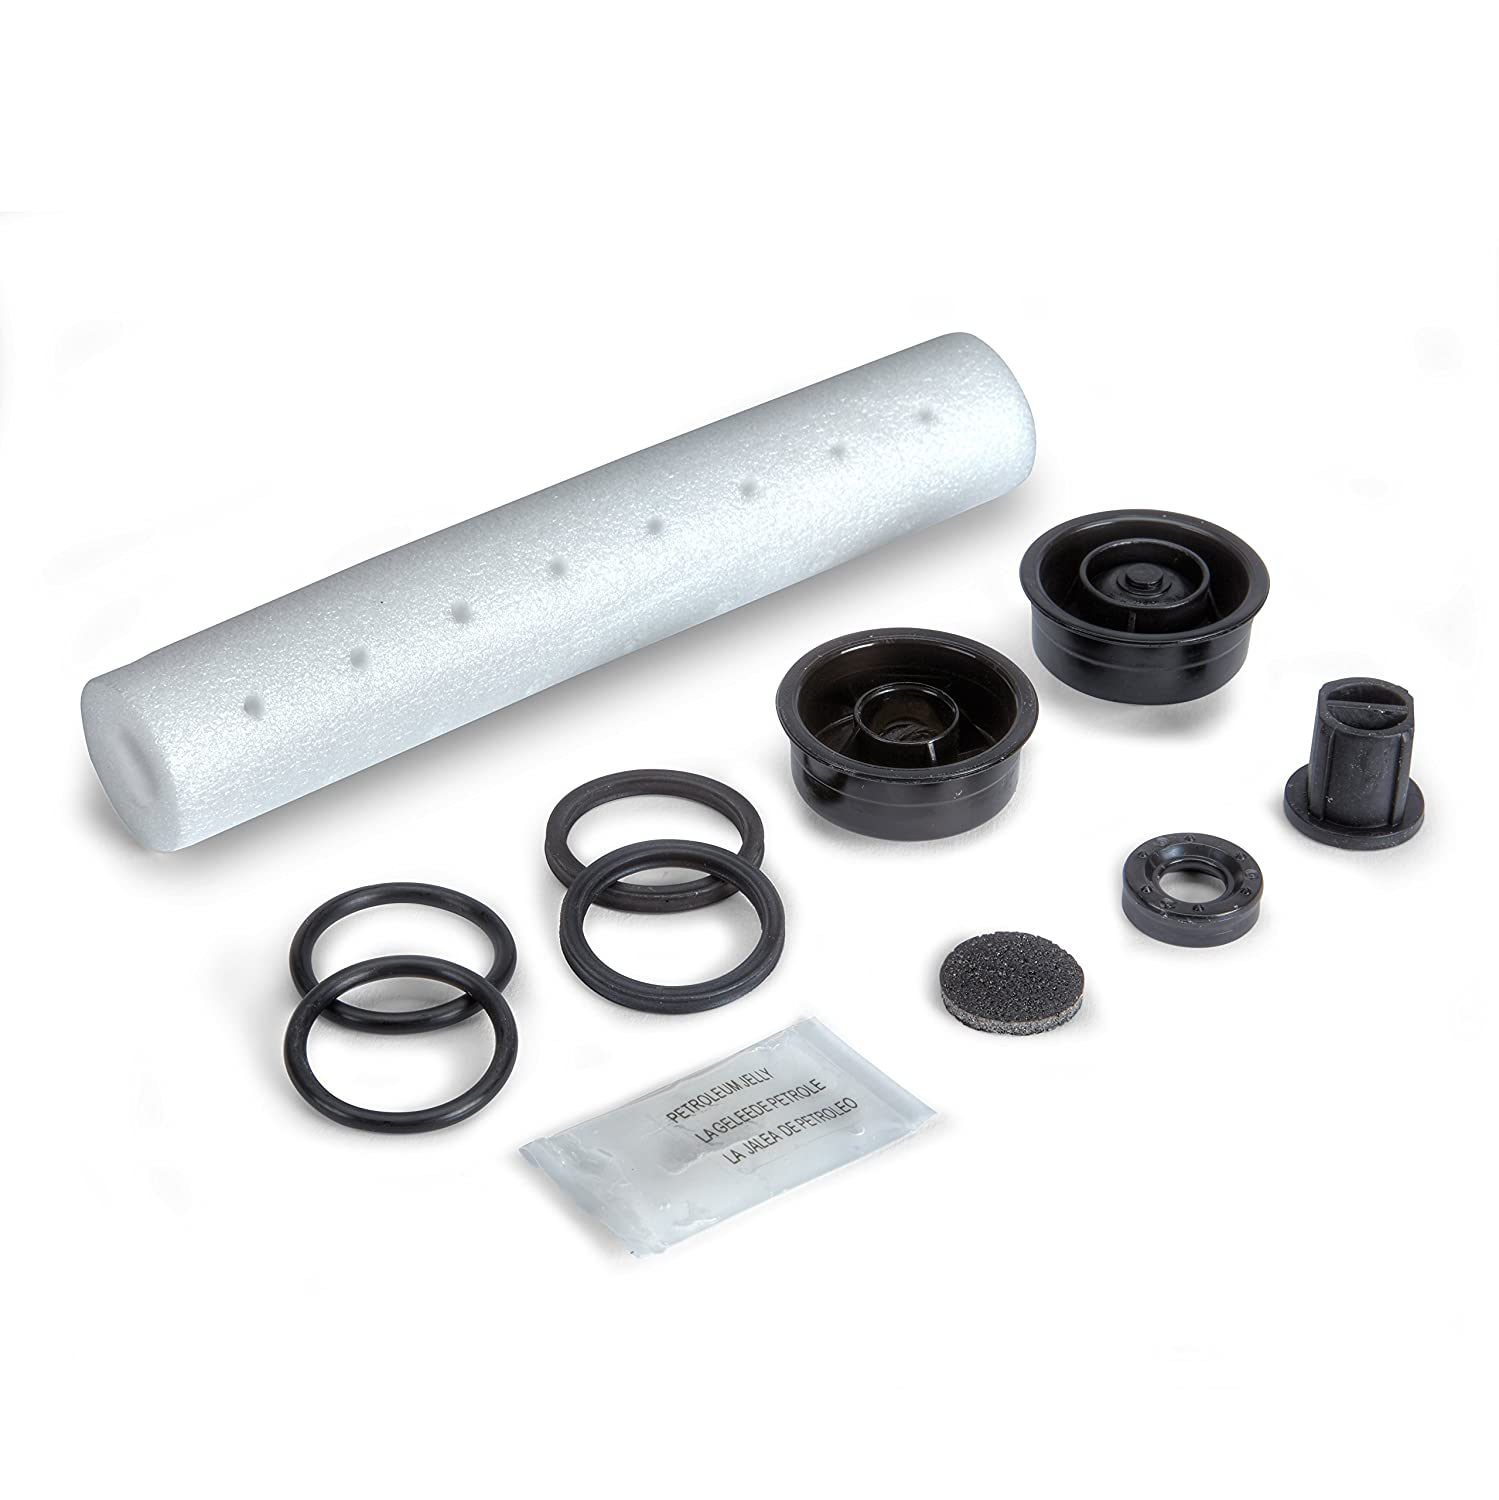 Home Right C800798 Roller Tune-Up Kit - Paint Rollers - Amazon.com